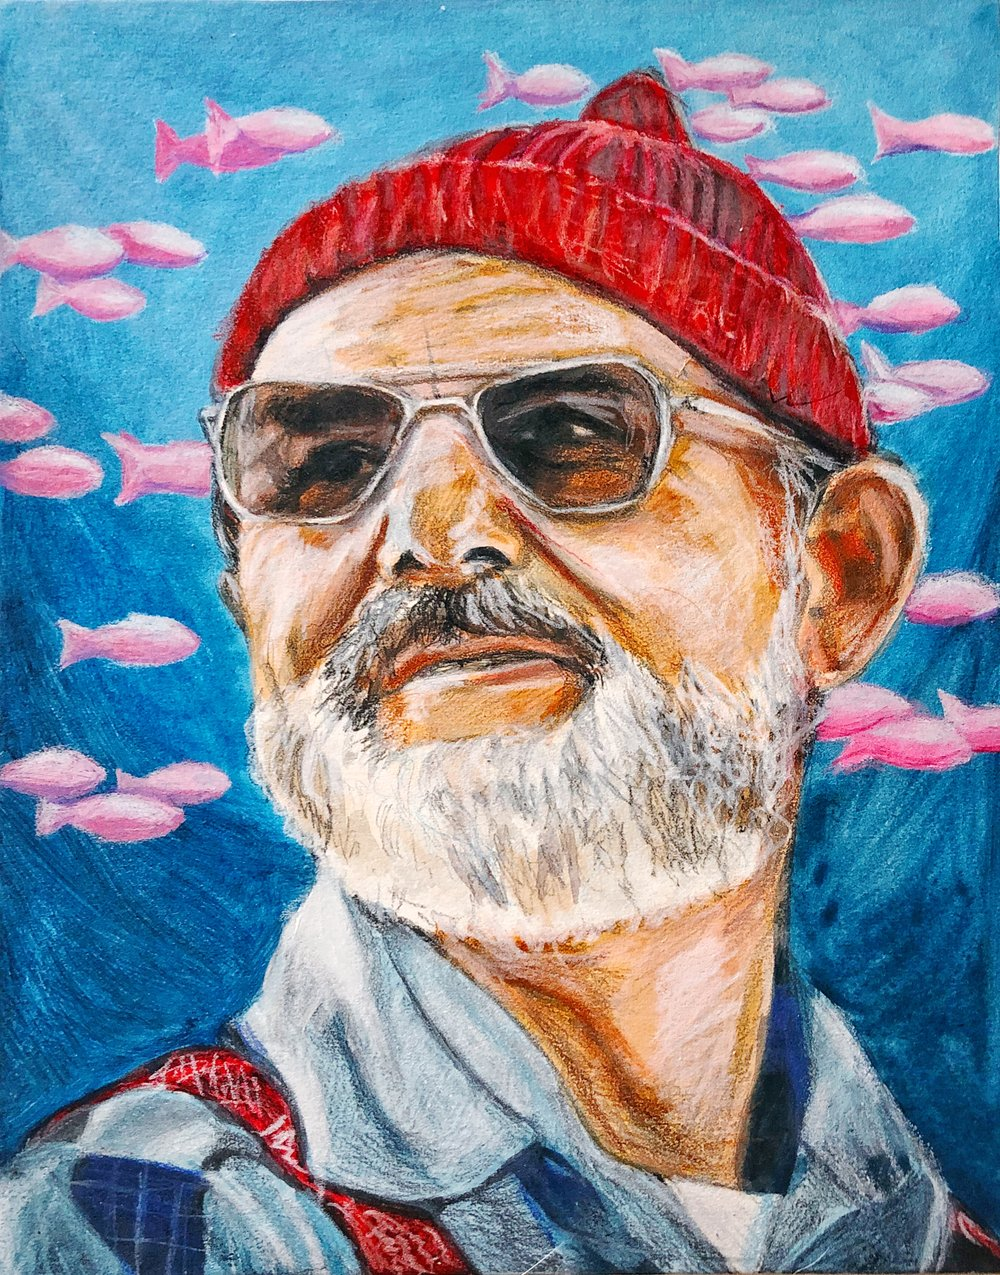 """Steve Zissou"" - Mixed Media on Illustration Board, 11"" x 14"""